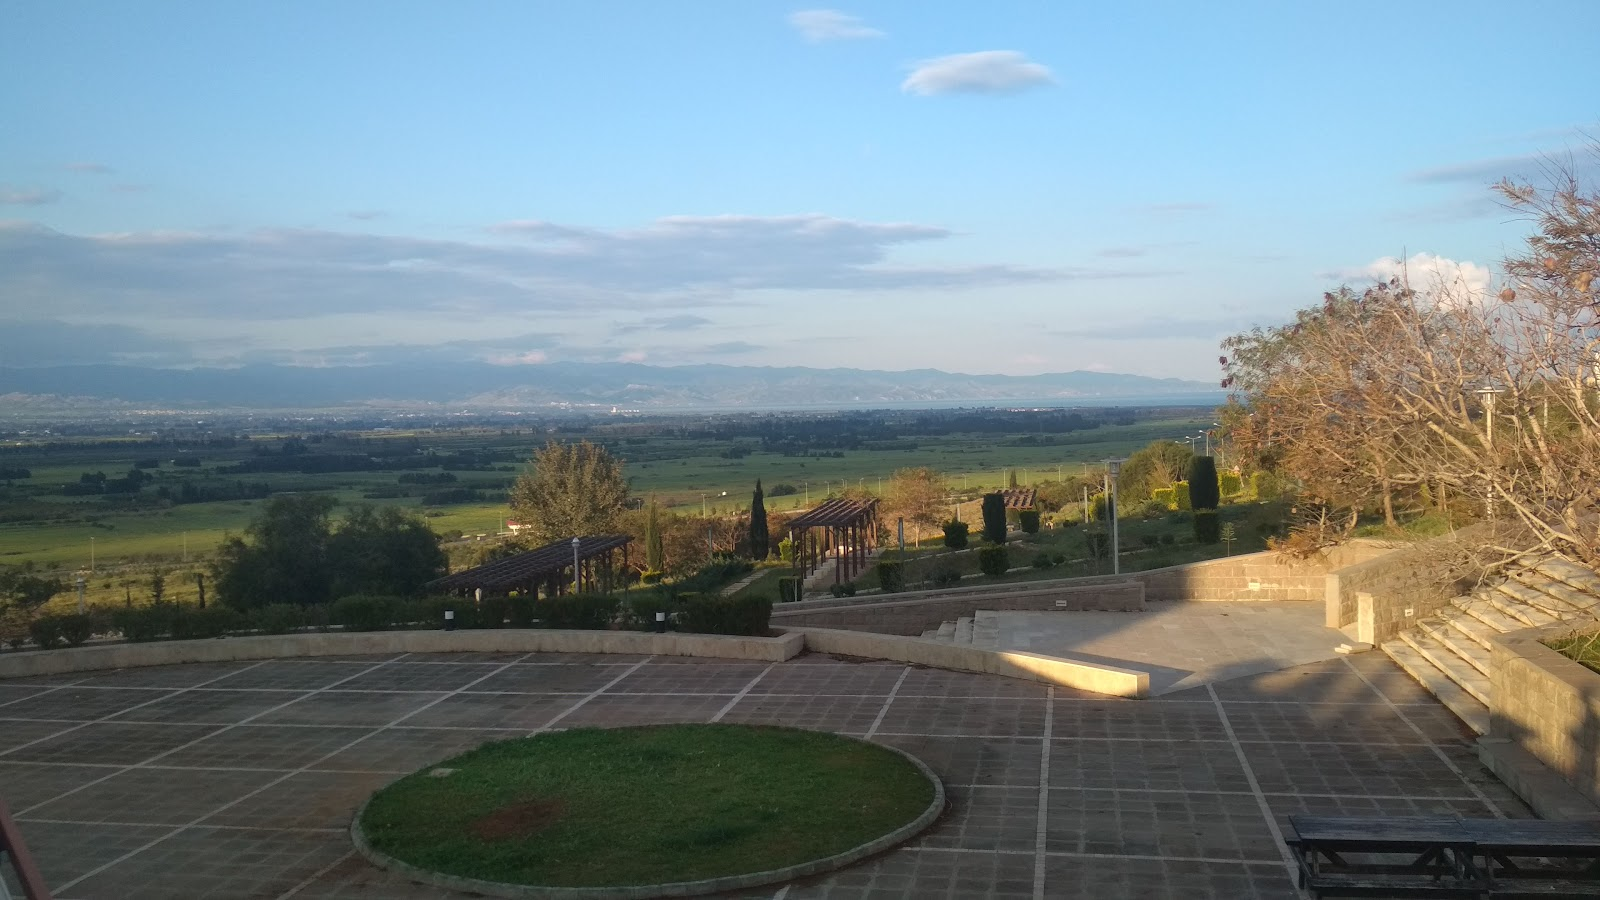 A picture of the view that students have of Güzelyurt from the campus.